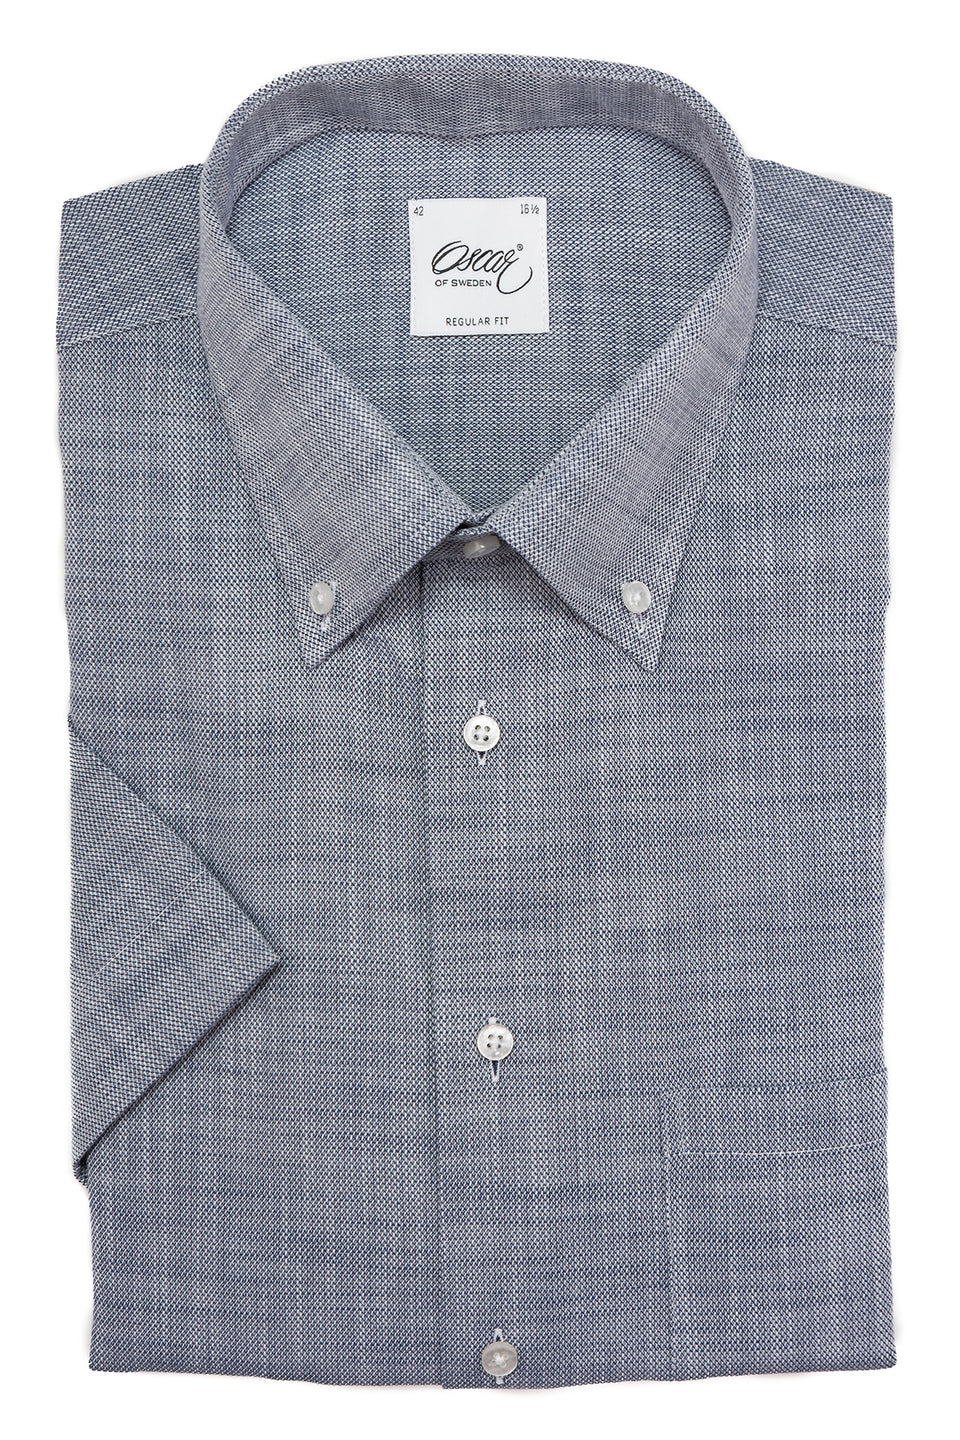 Indigo blue regular fit button down short sleeve shirt